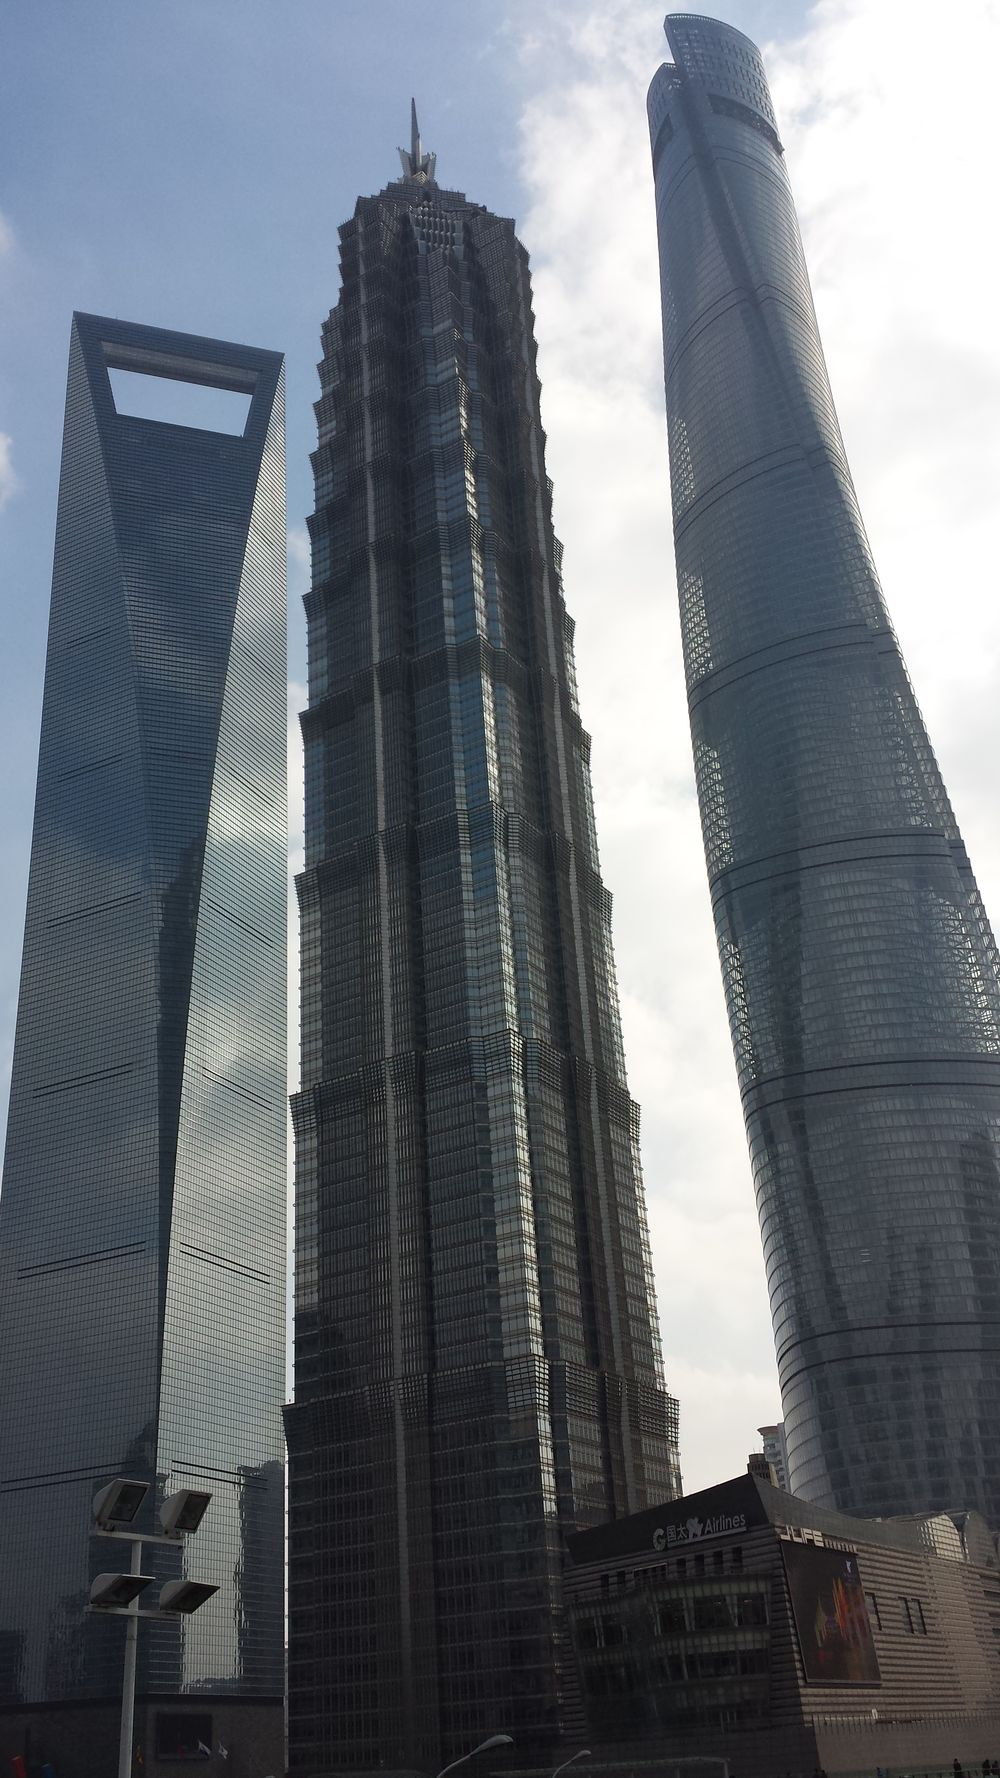 Top three towers in Shanghai. China Skycraper Tower Shanghai Jin Mao Tower Shanghai Tower Décapsuleur Shanghai World Financial Center Reflection Sky